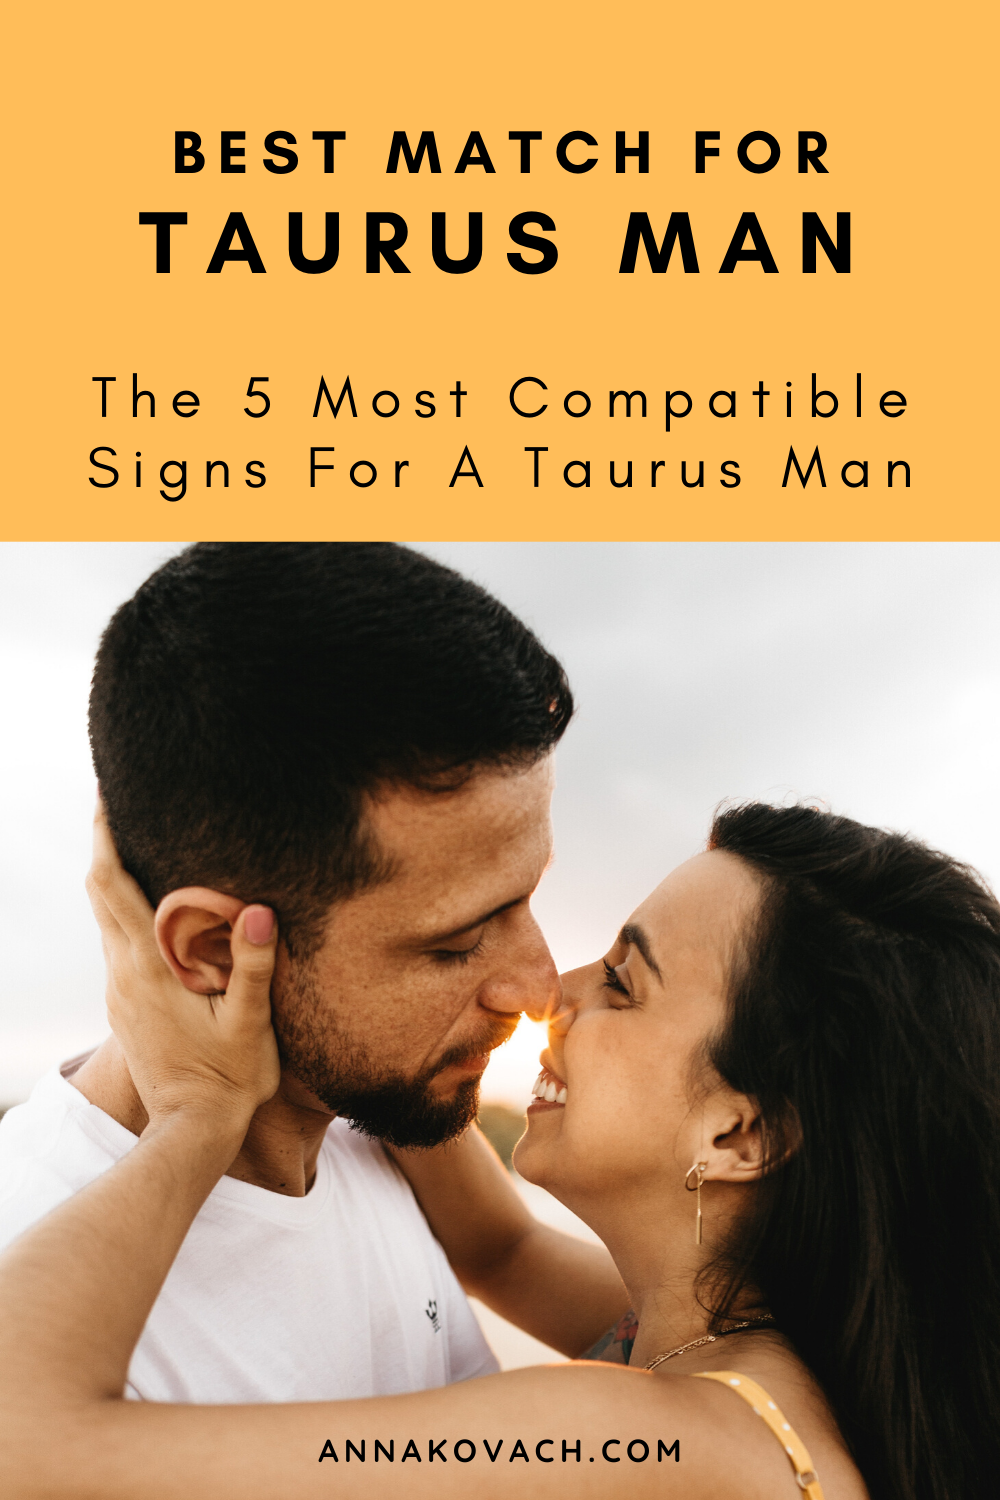 Best Match For Taurus Man: 5 Most Compatible Signs For A